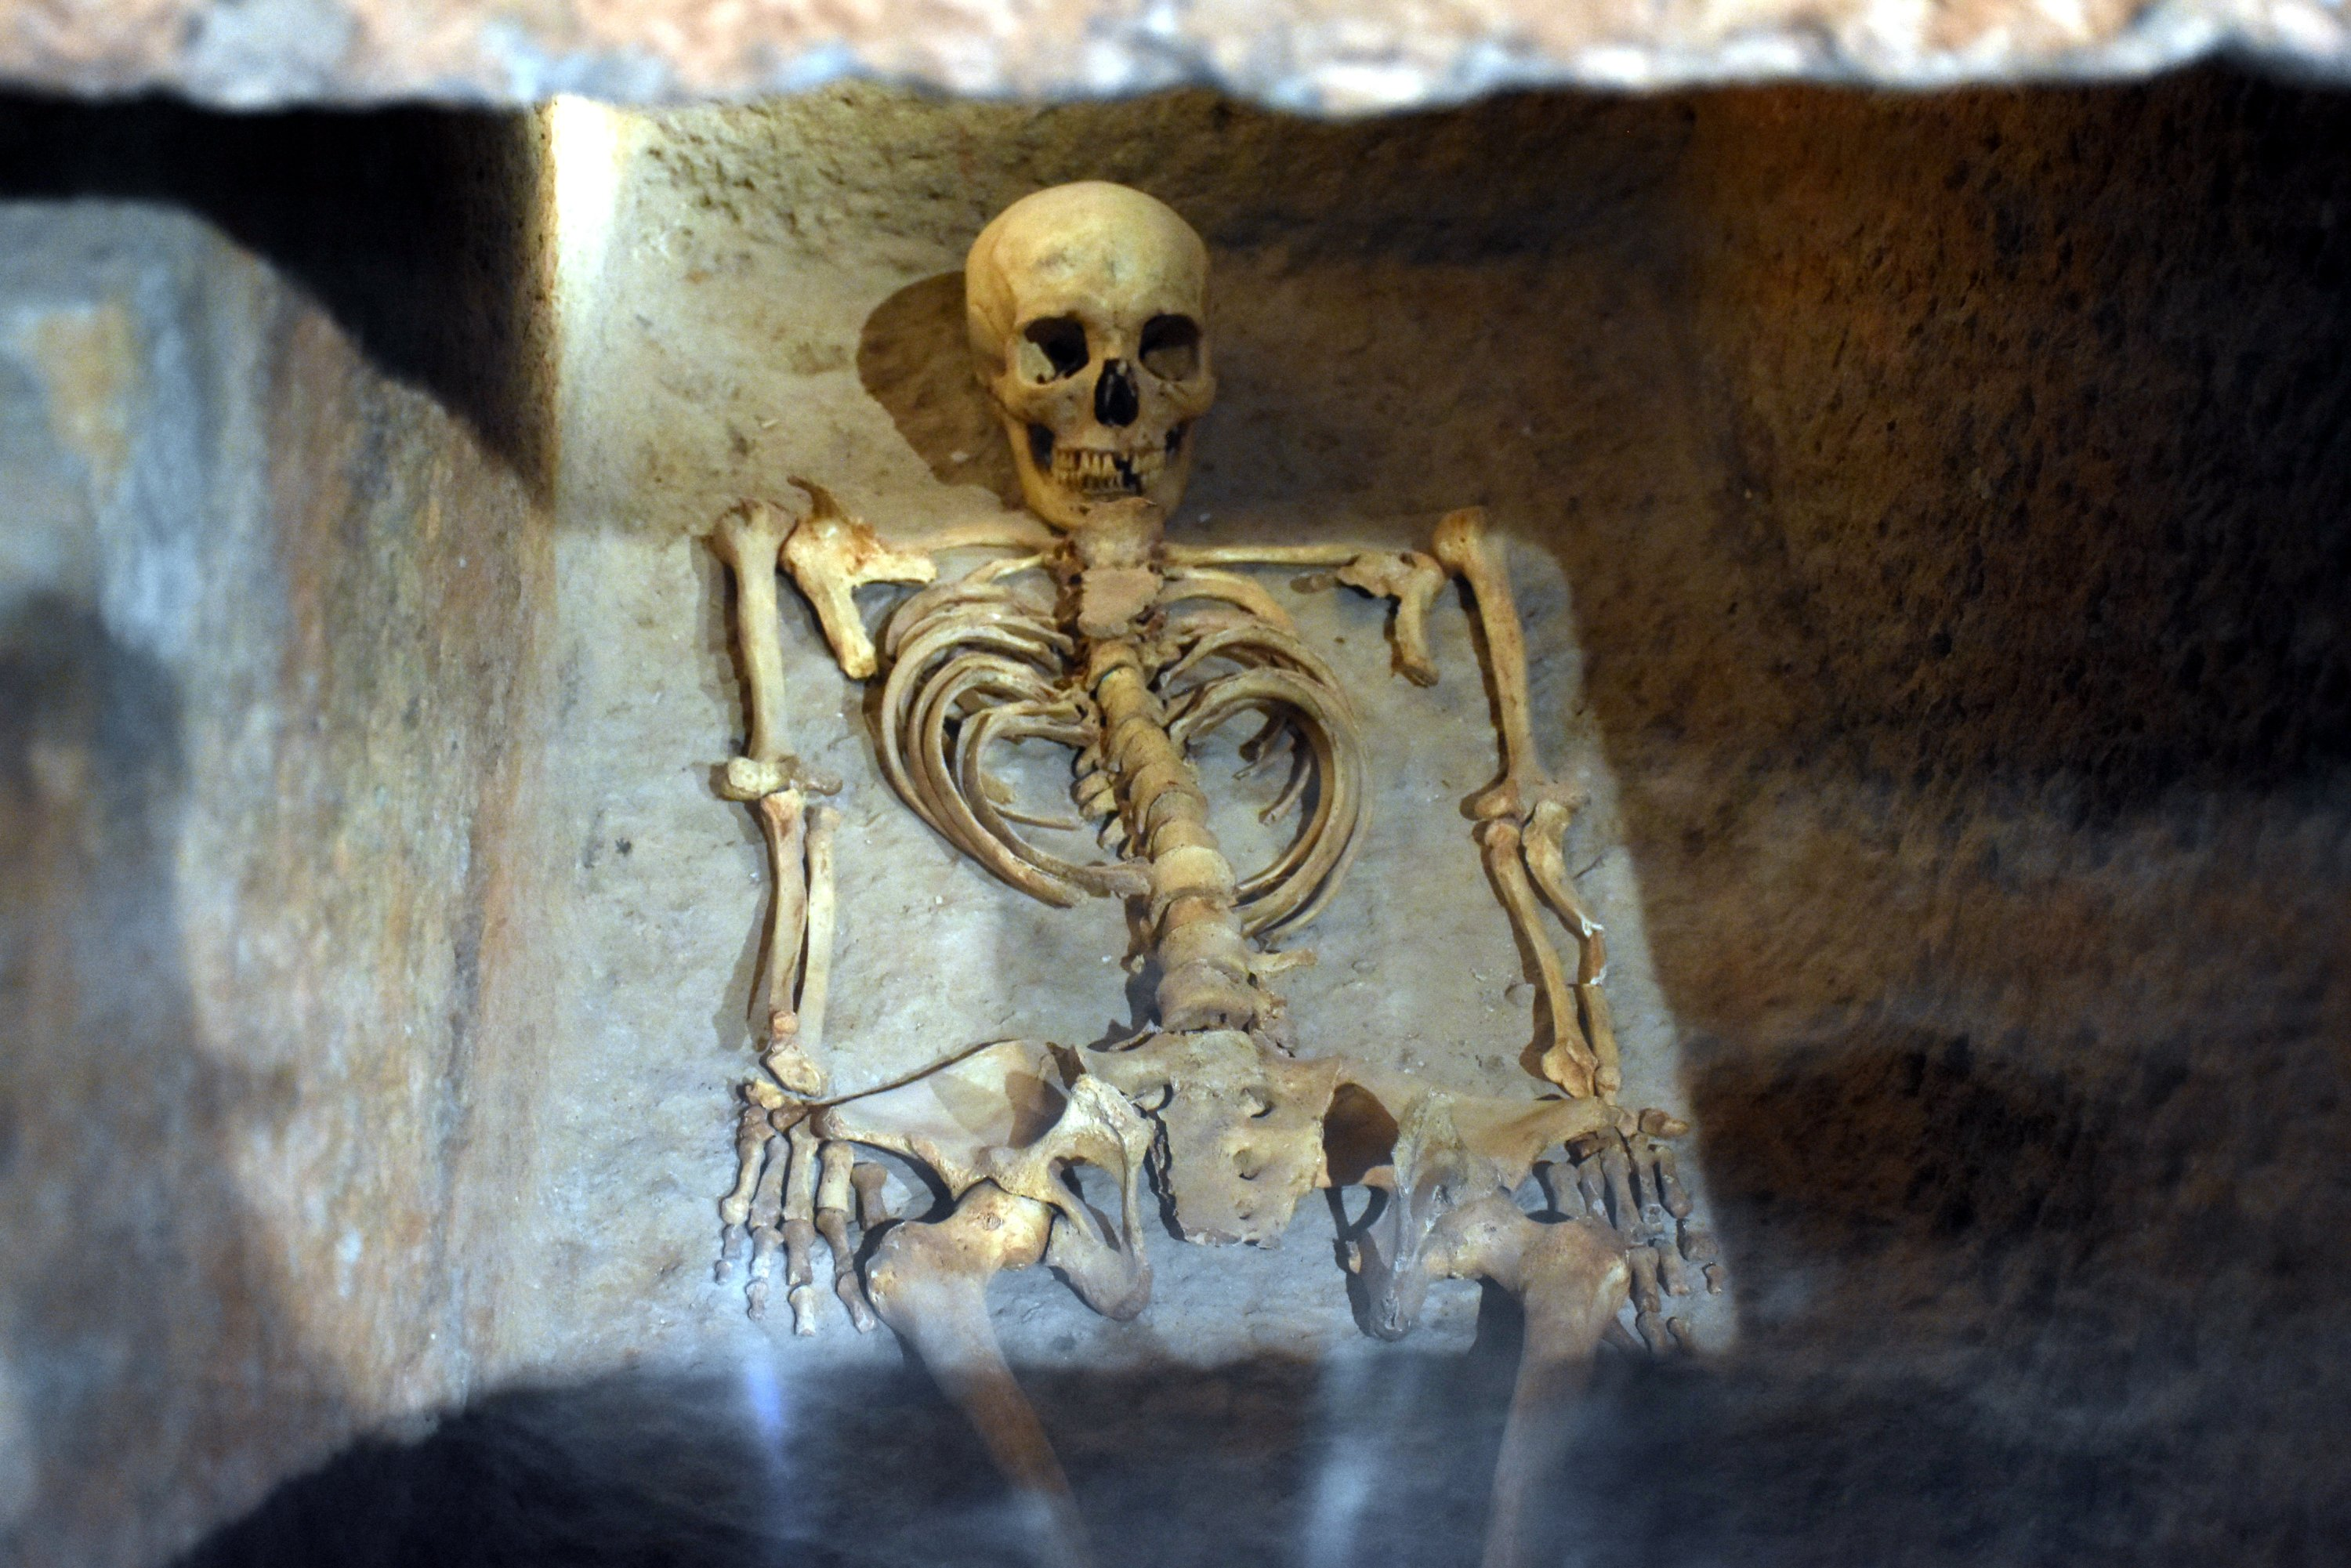 The skeleton of the 'Carian Princess' found inside the sarcophagus.